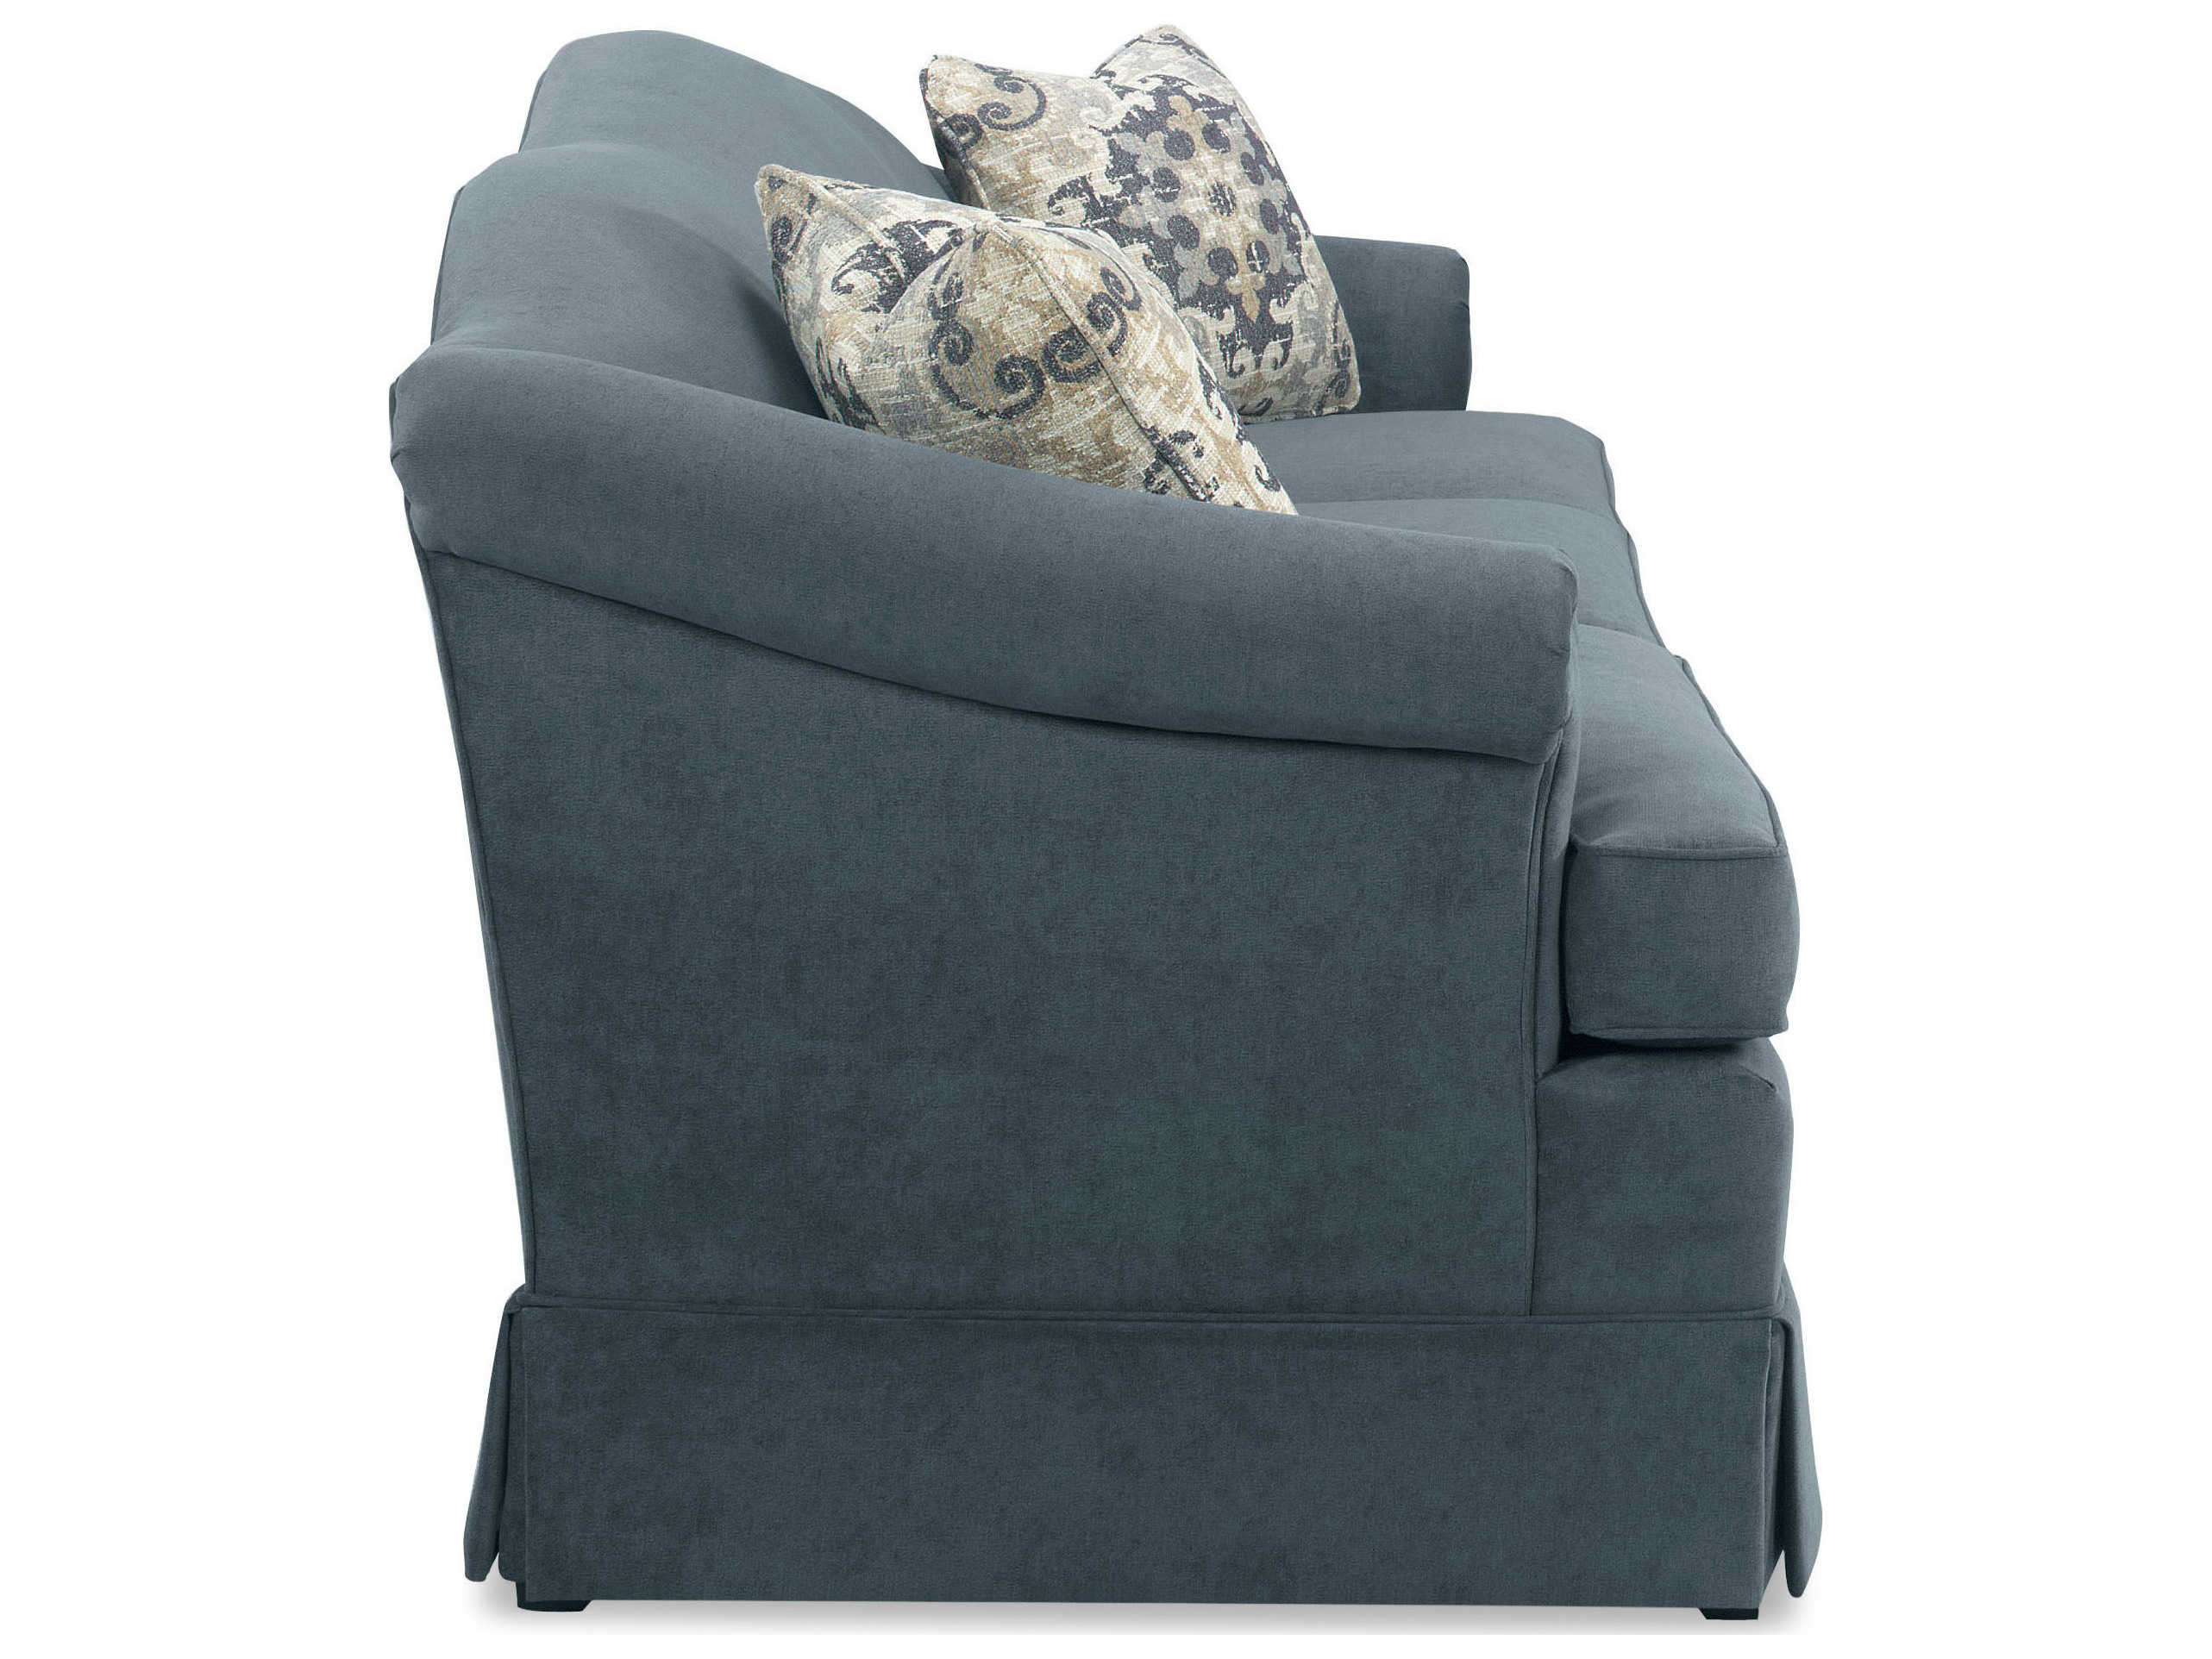 Temple Furniture Yorktown Sofa Couch